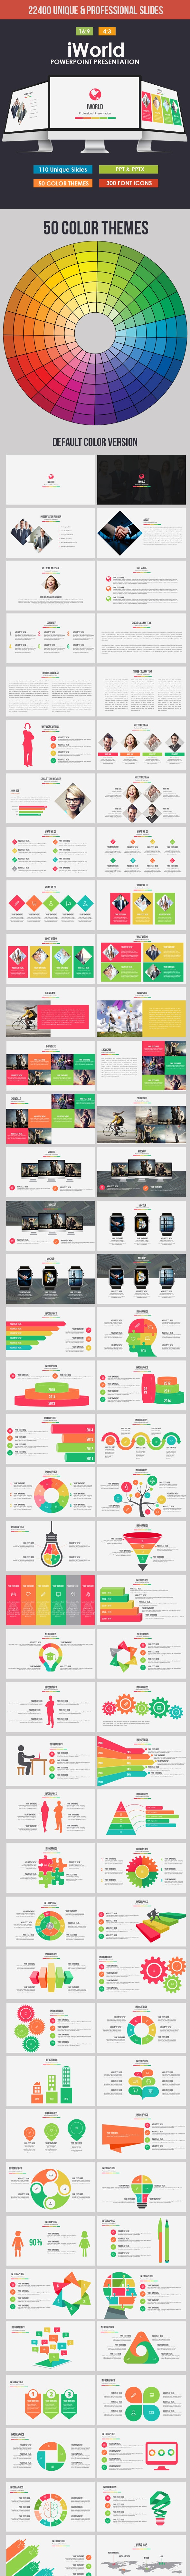 iWorld - Powerpoint Presentation Template - Business PowerPoint Templates